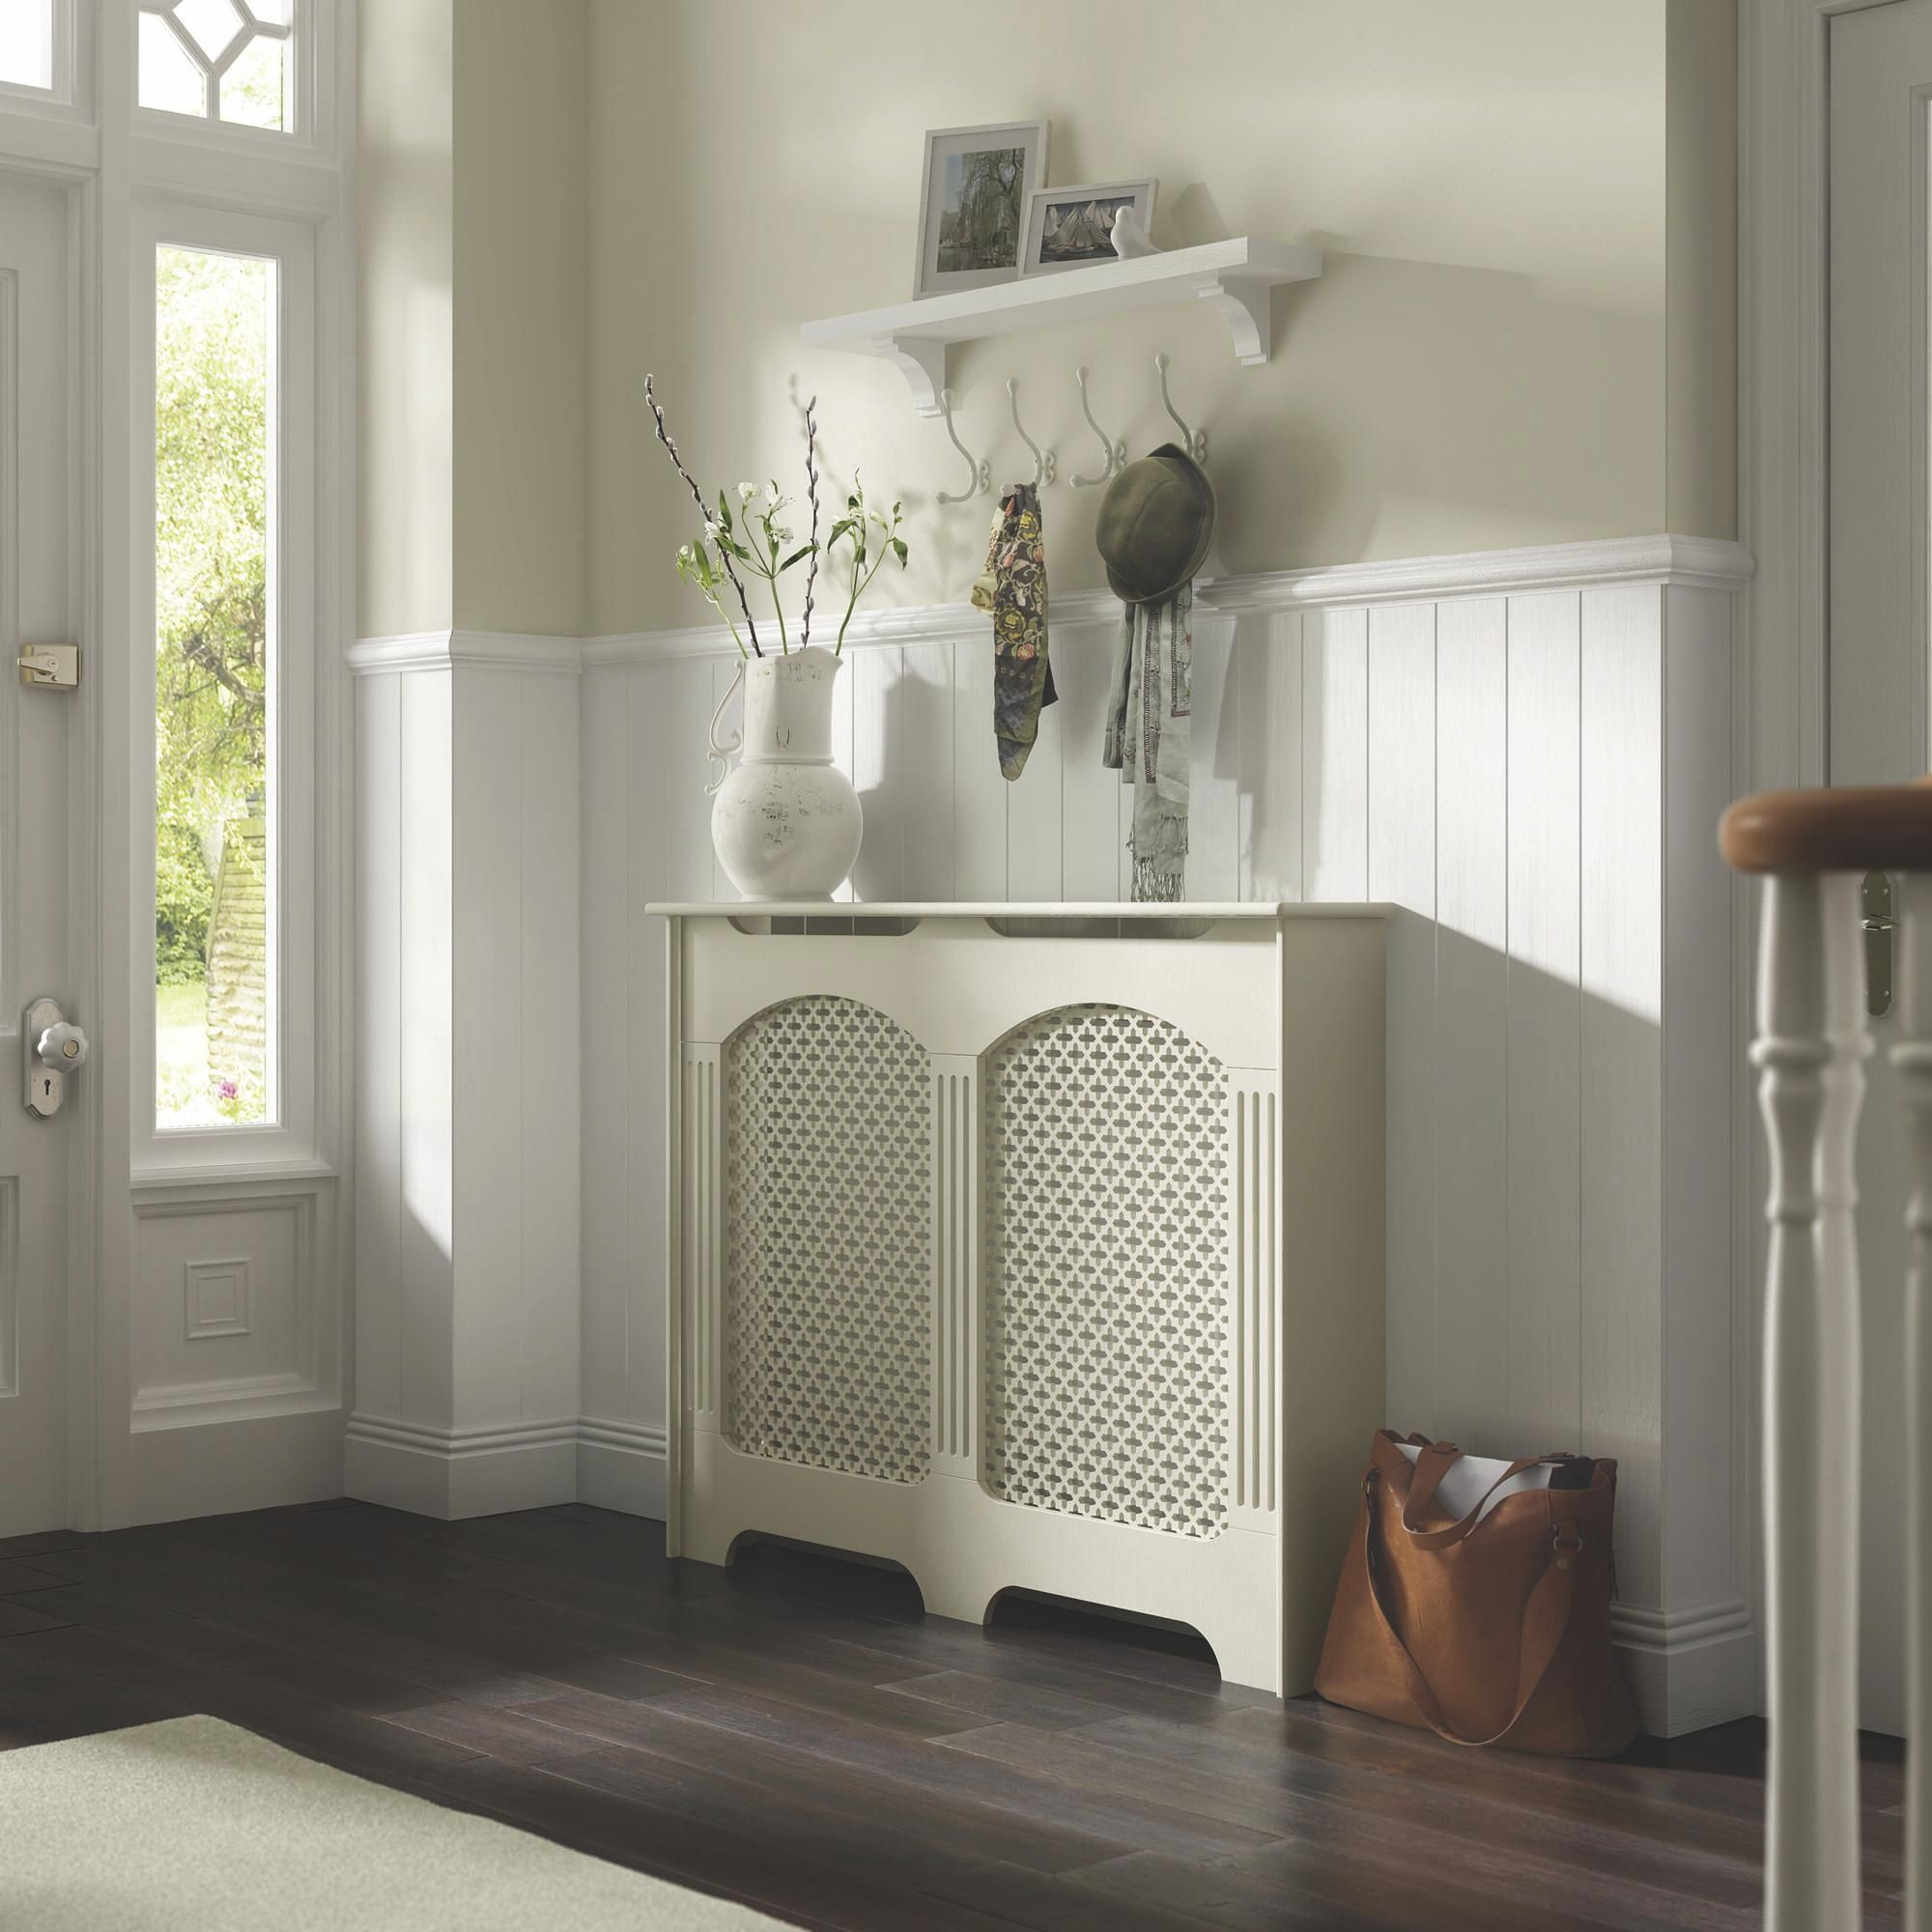 art deco kitchen chairs swivel vanity chair with back cambridge medium white painted radiator cover | departments diy at b&q